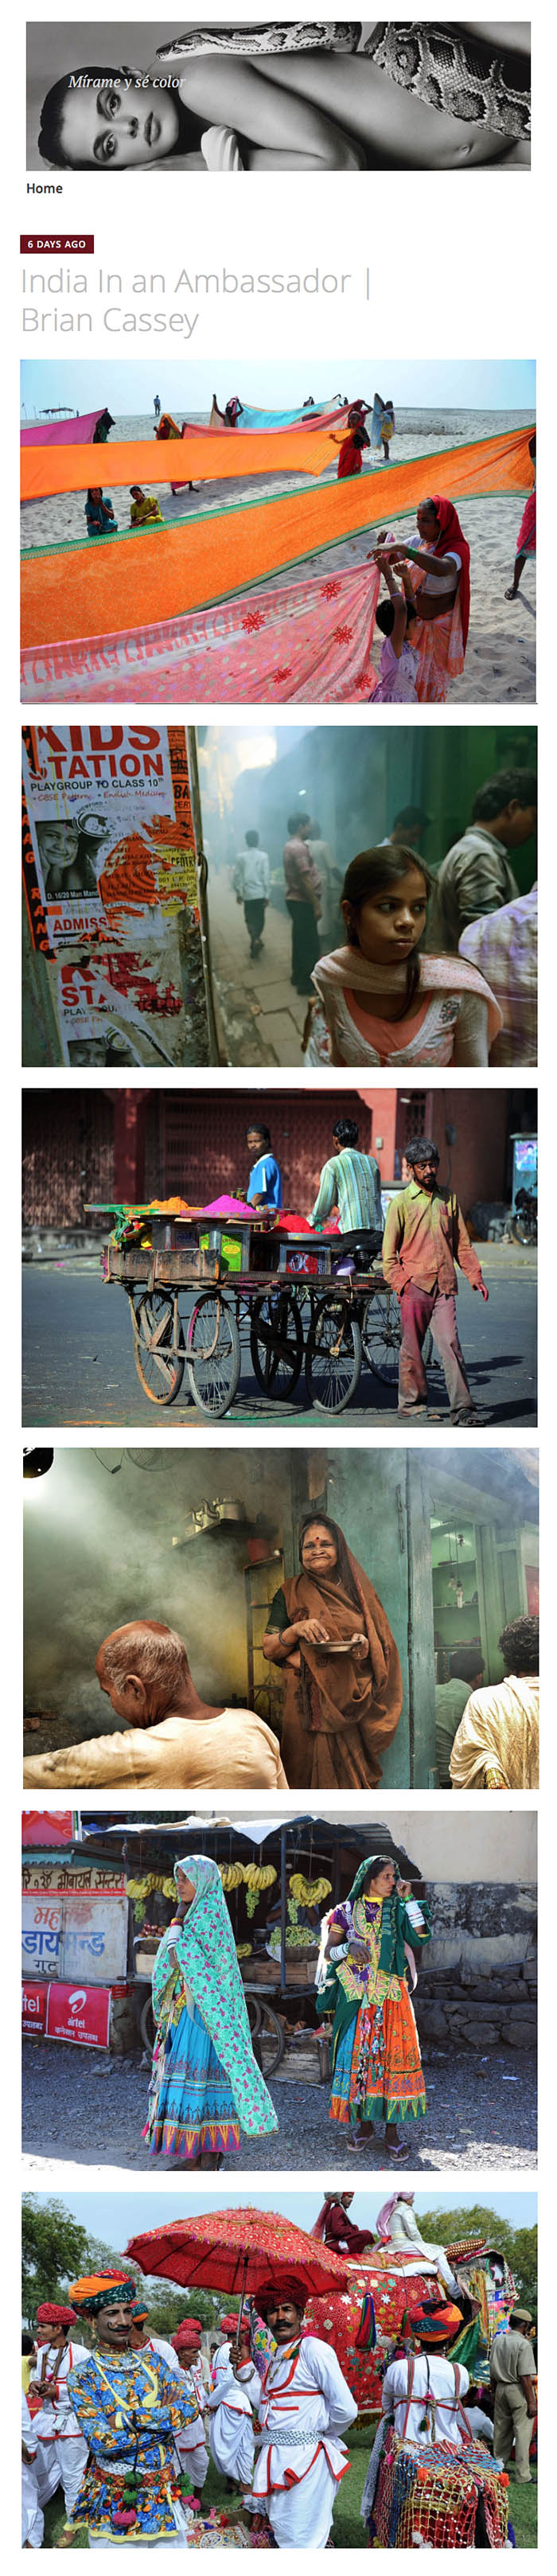 Masters of Photography - Brian Cassey - India in an Ambassador